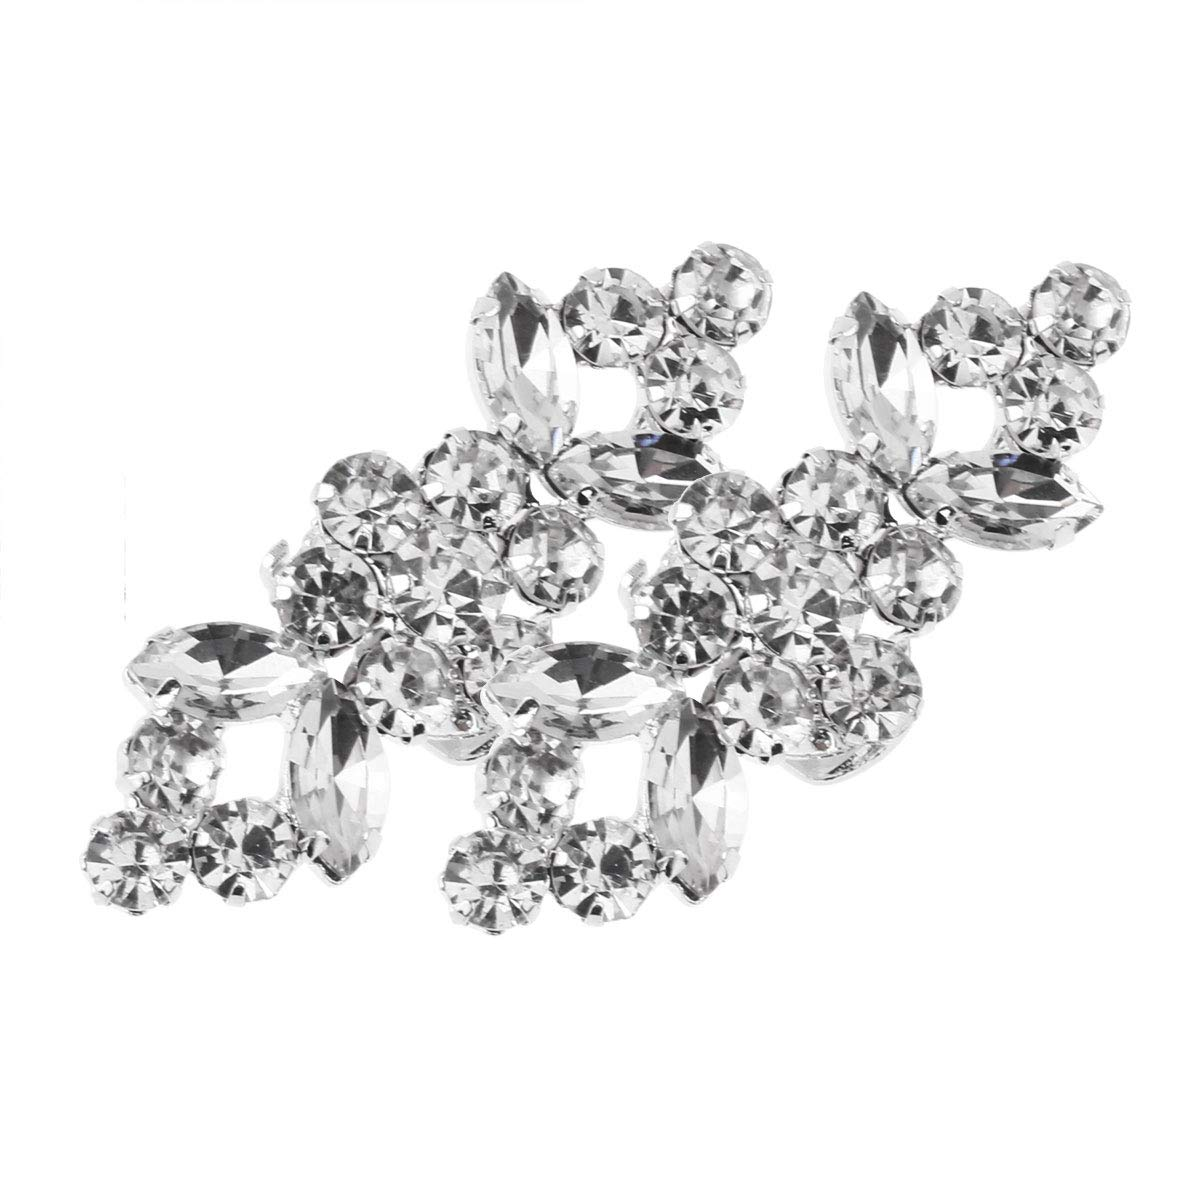 FEESHOW Elegant Rhinestone Crystal Metal Shoe Clips Wedding Party Pack Type A One Size